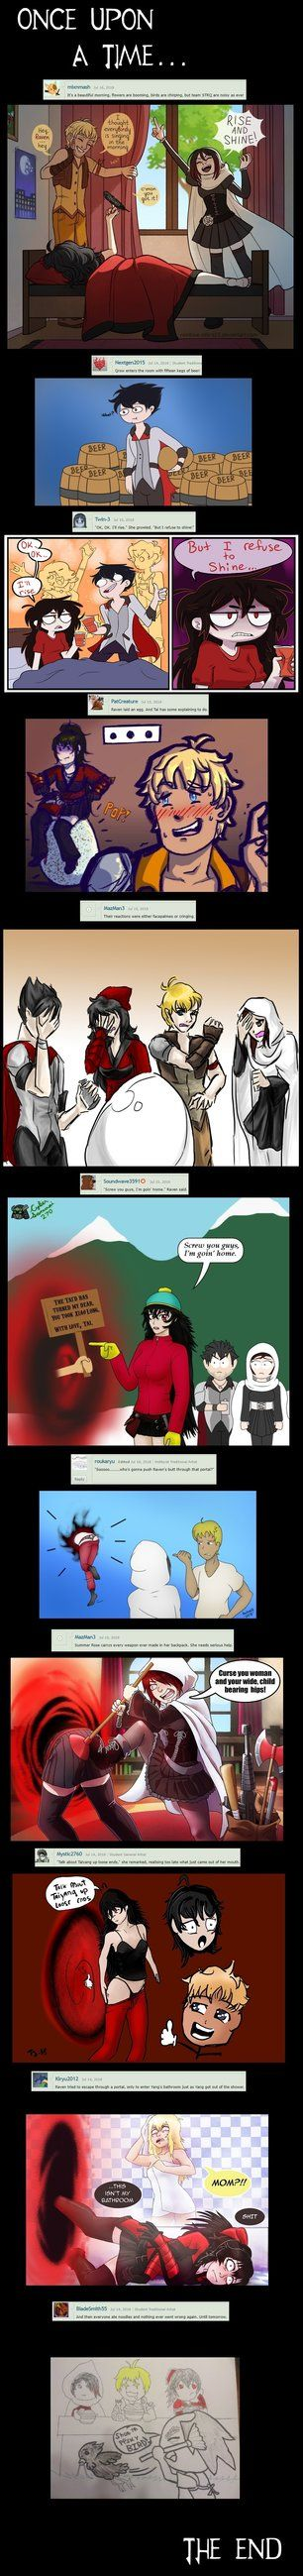 RWBY Group Community Comic 6 Version 1! by https//www